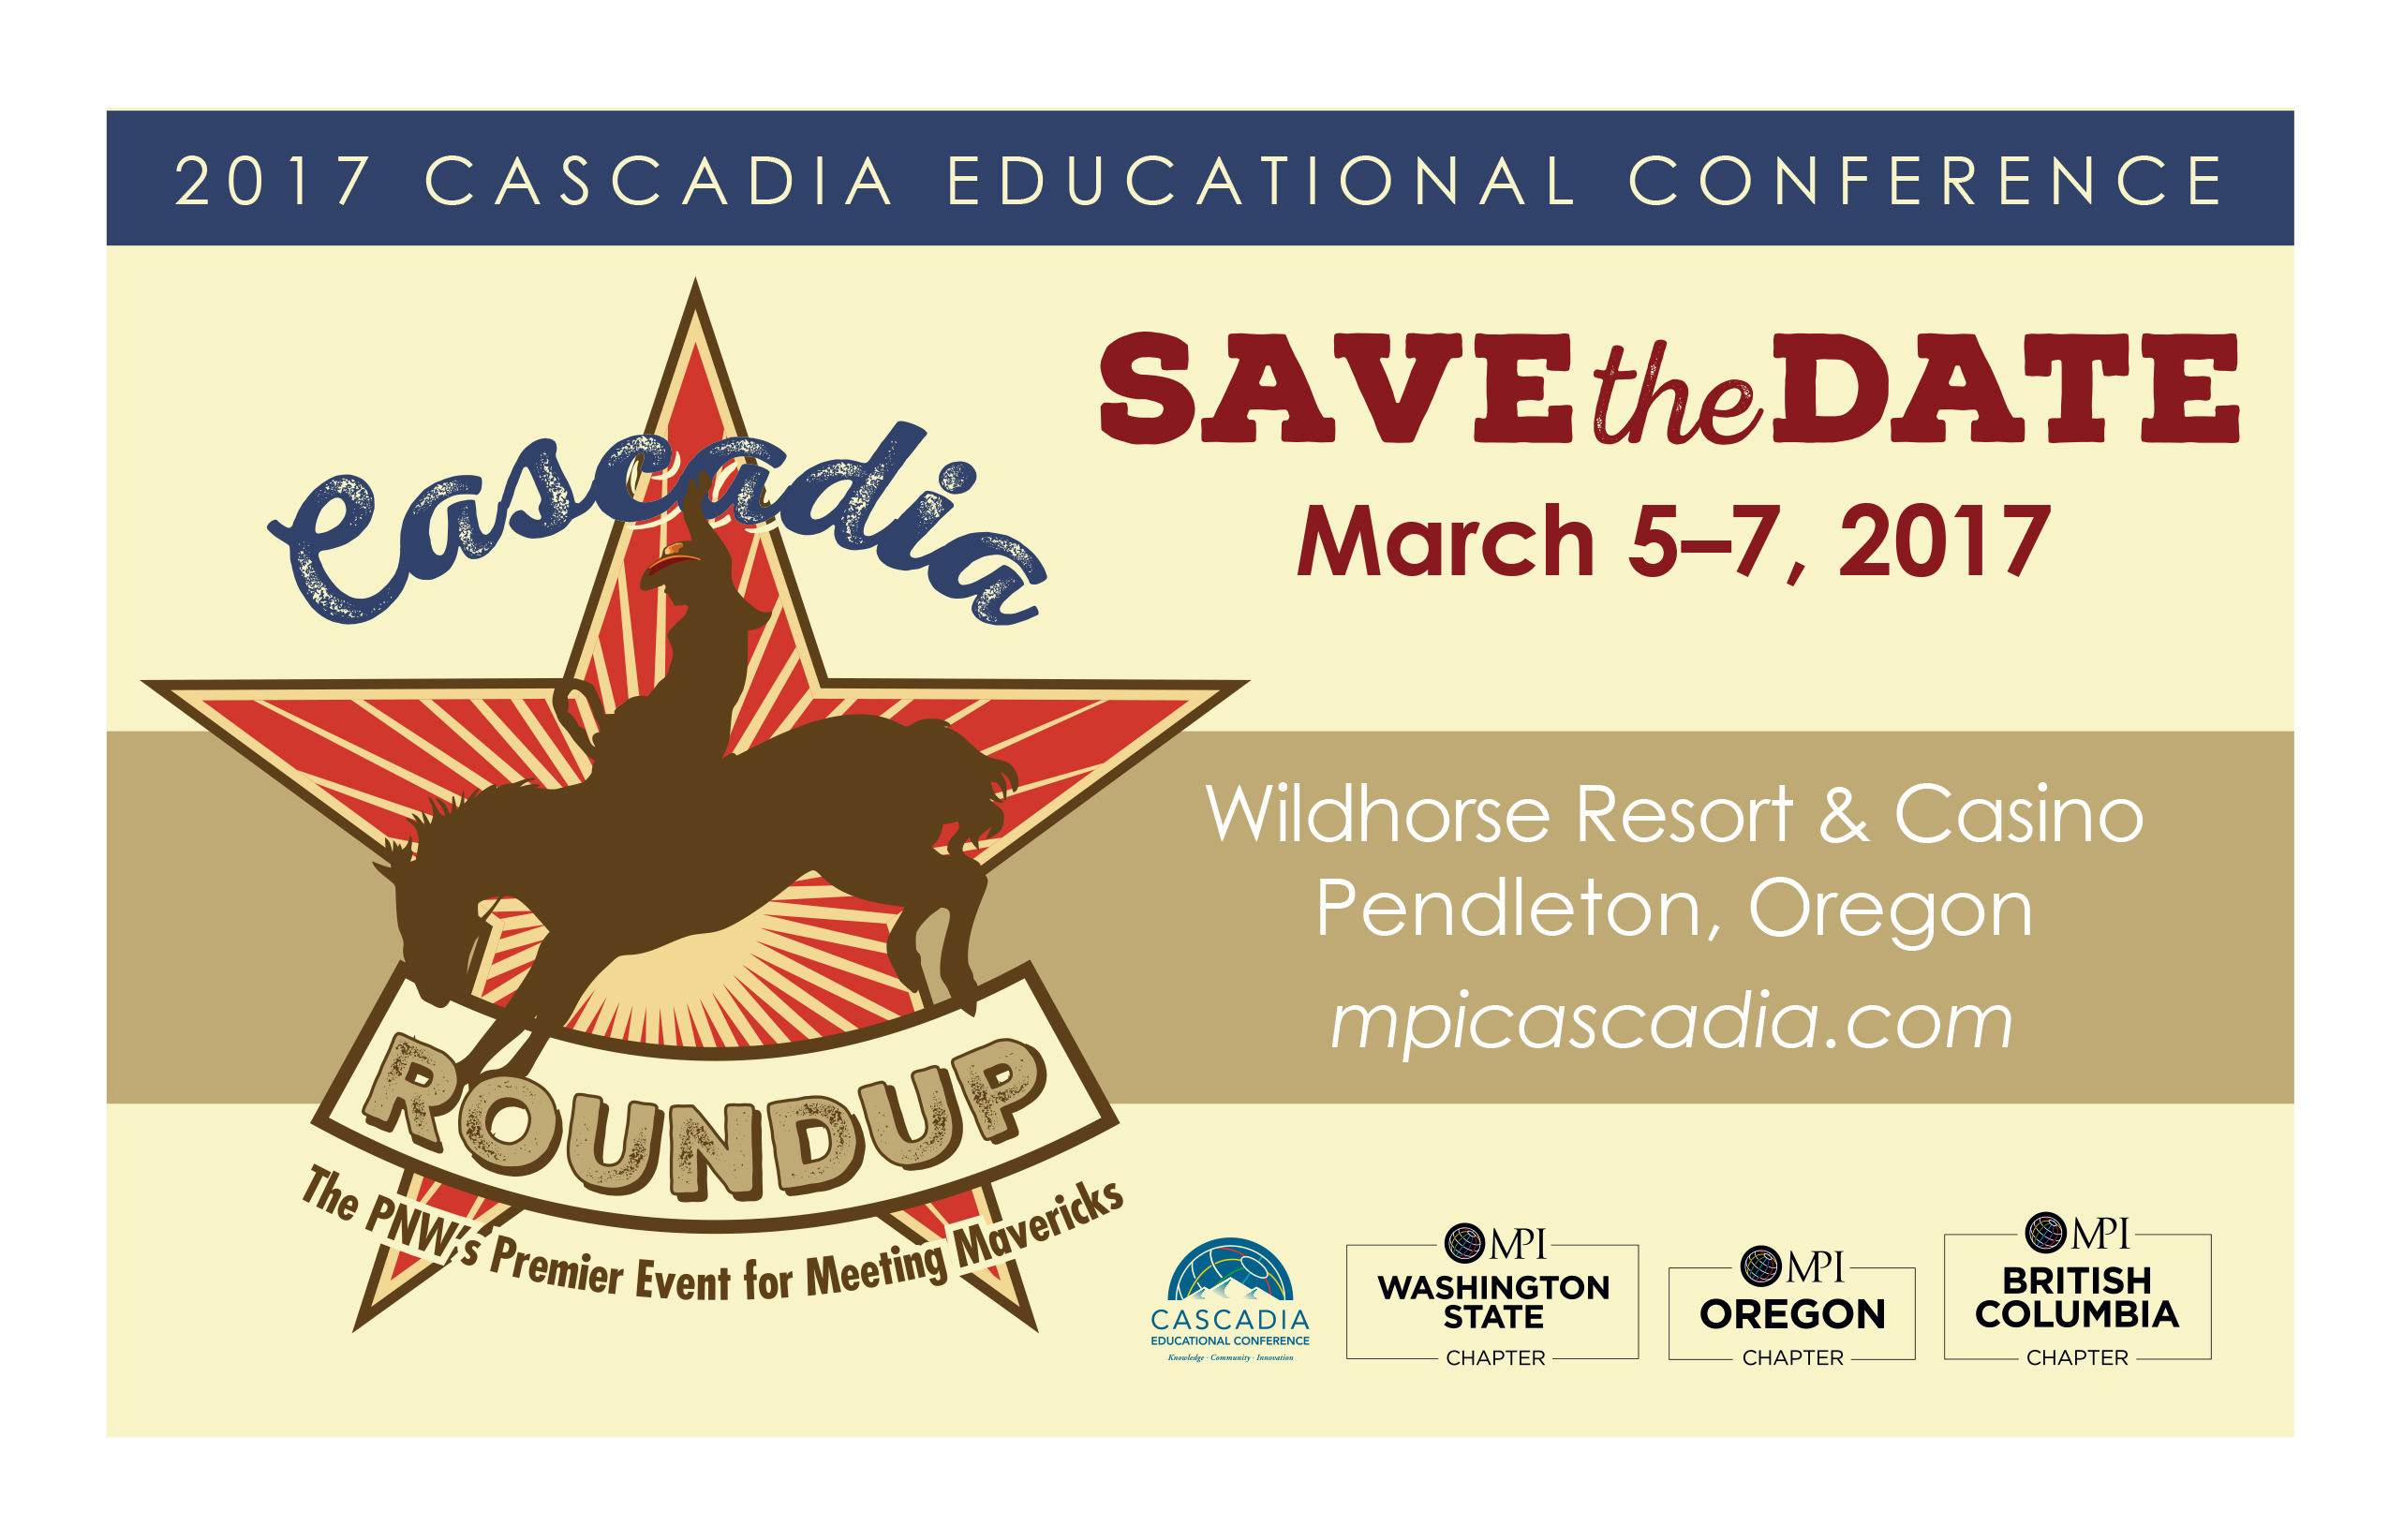 Cascadia Roundup 2017_Save the Date Postcard_Round